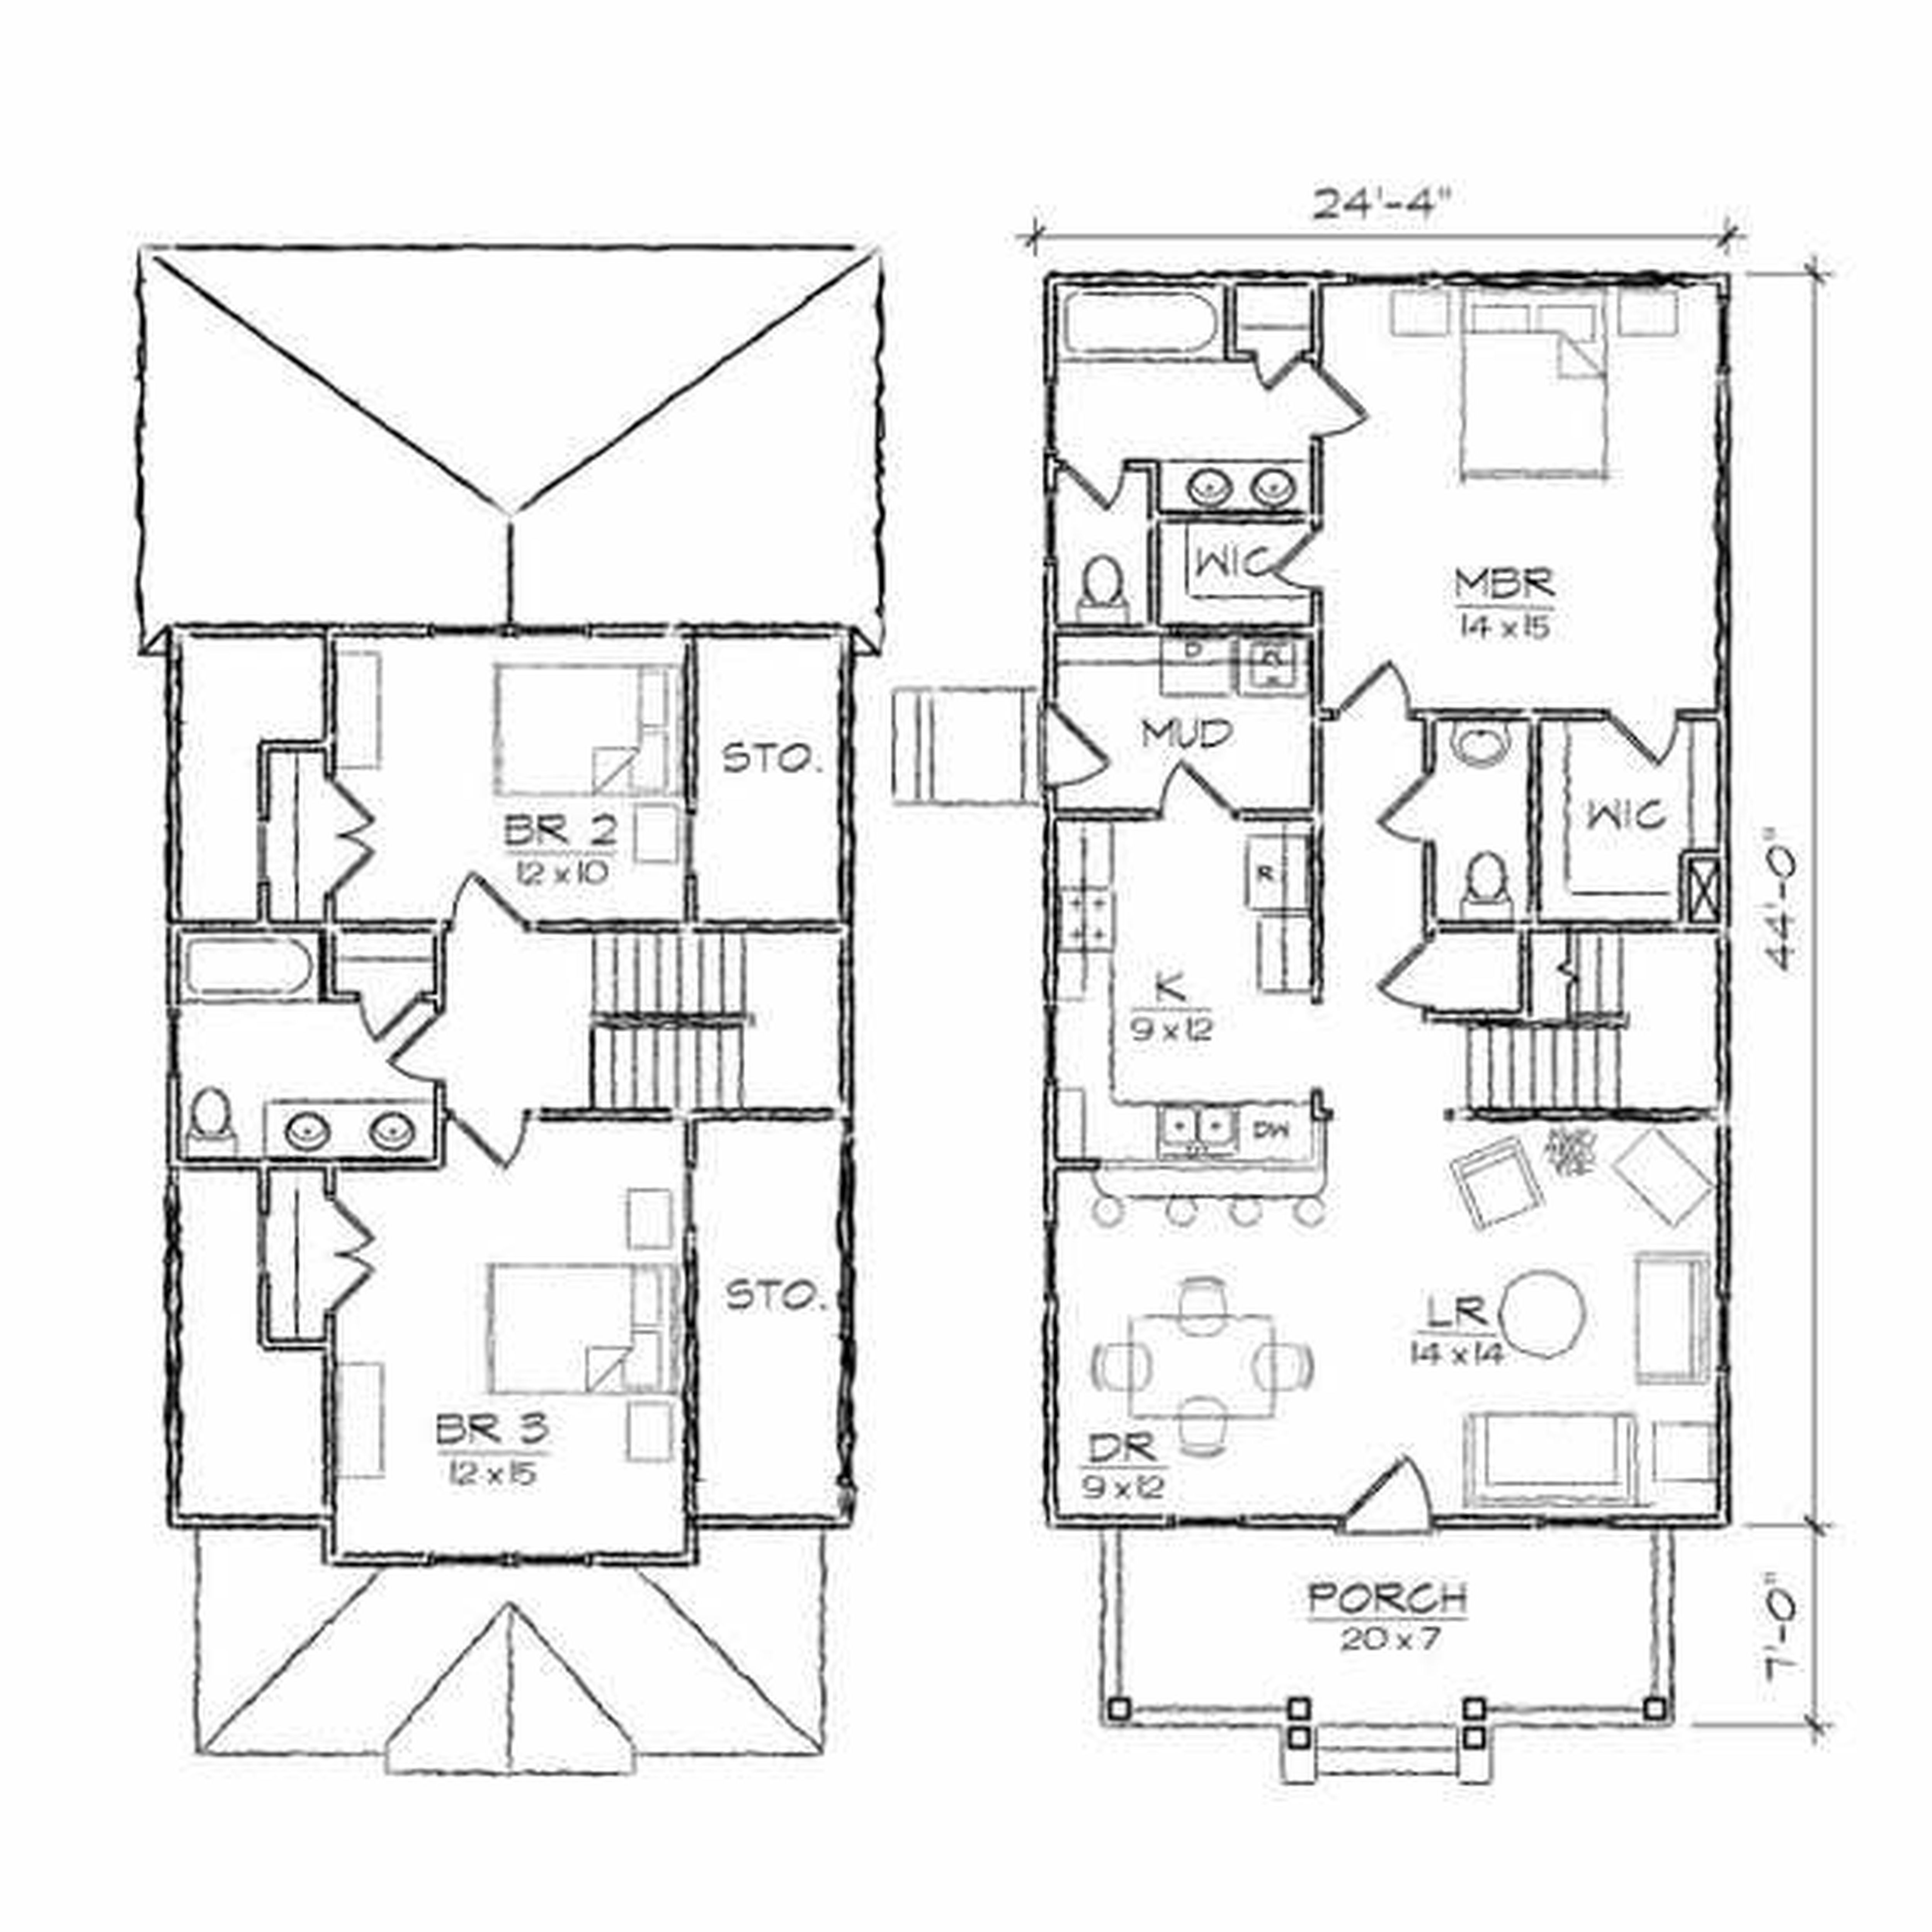 Stair Plan Drawing at GetDrawings com | Free for personal use Stair